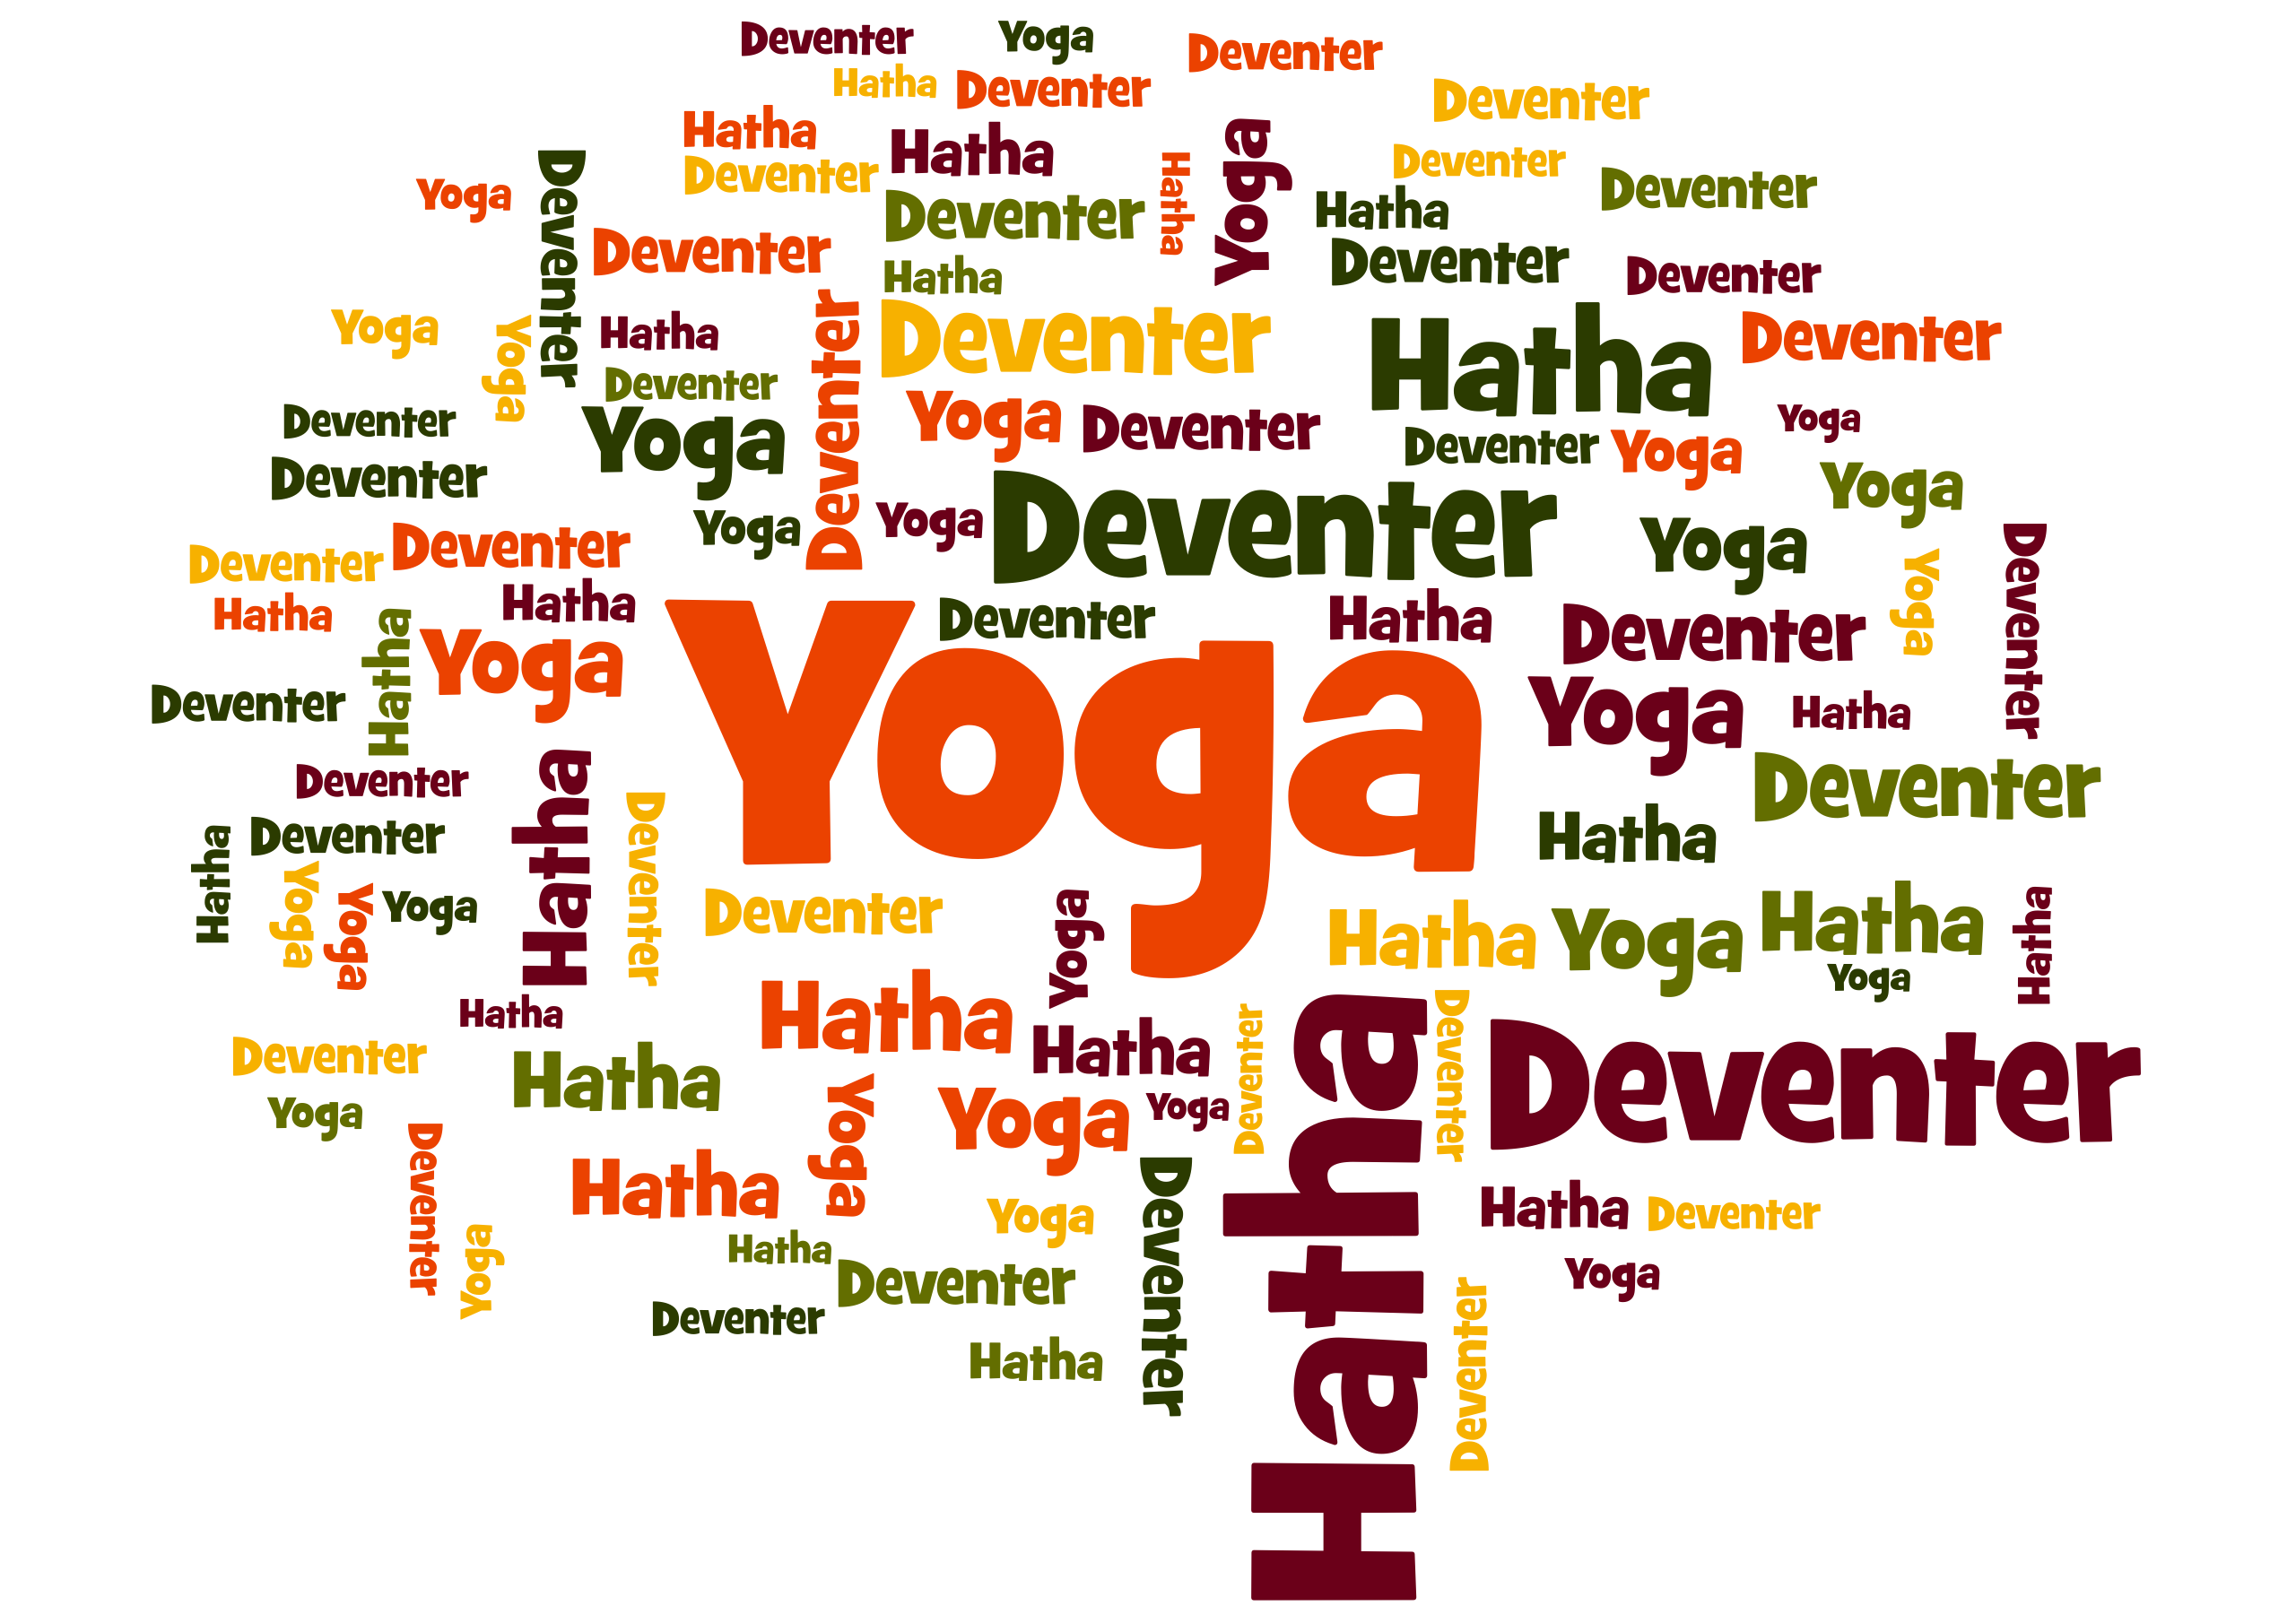 hatha yoga Deventer